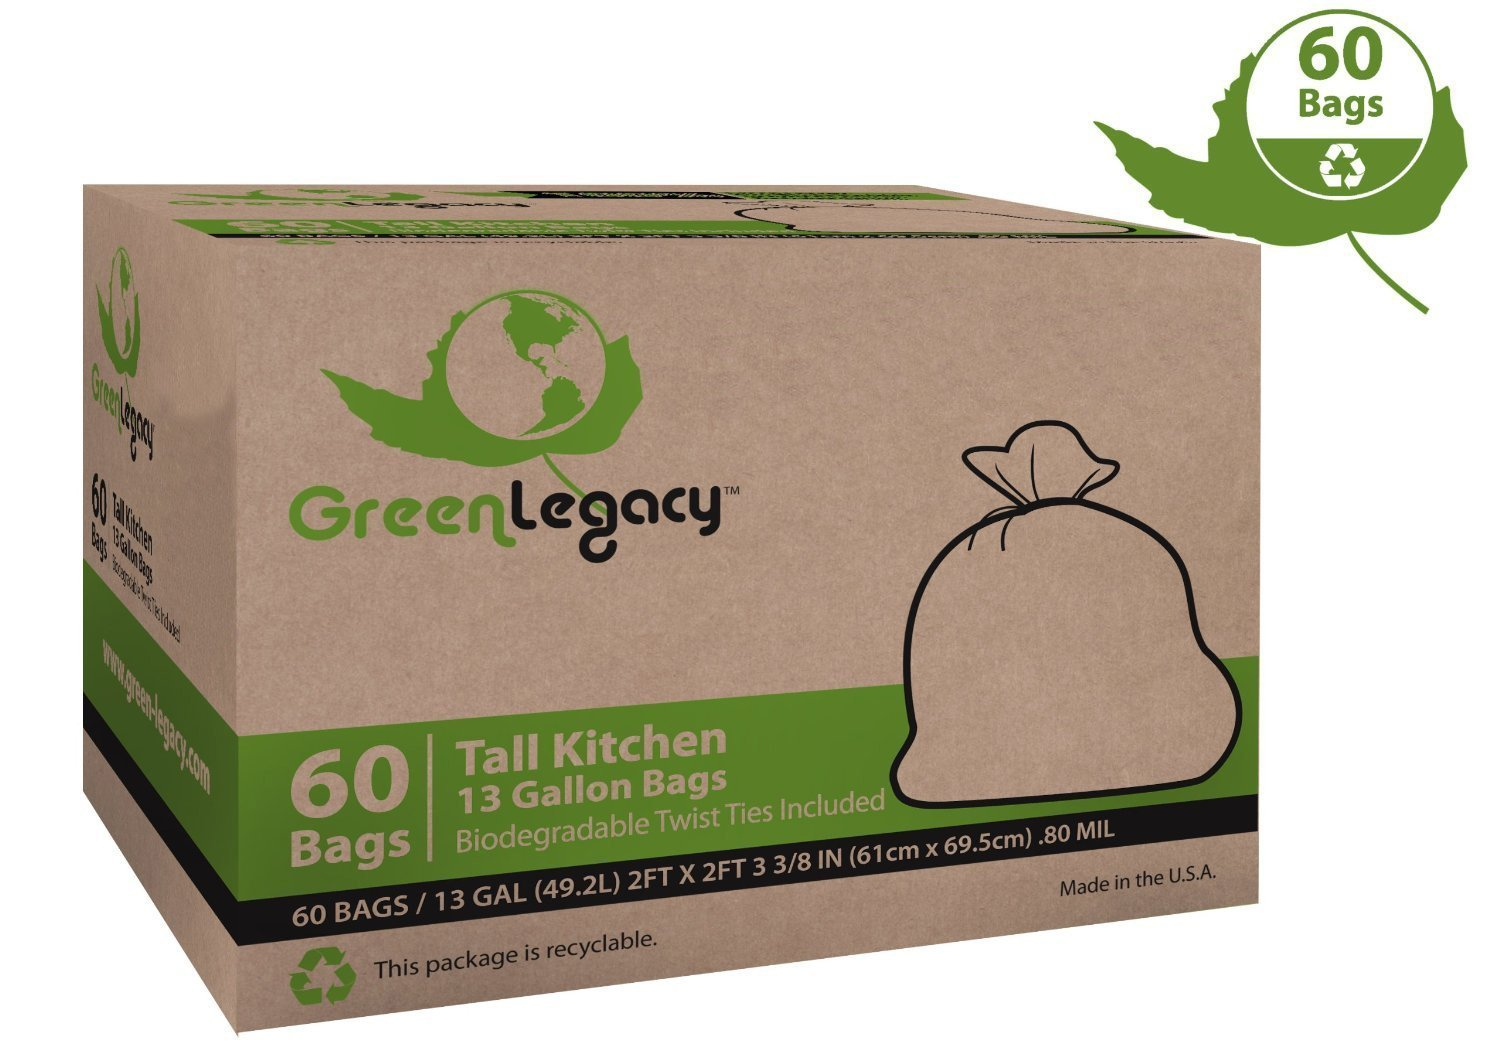 Green Legacy Tall Kitchen Trash Bags - 60 Bags/Box ON SALE! (17 Cents/Bag)